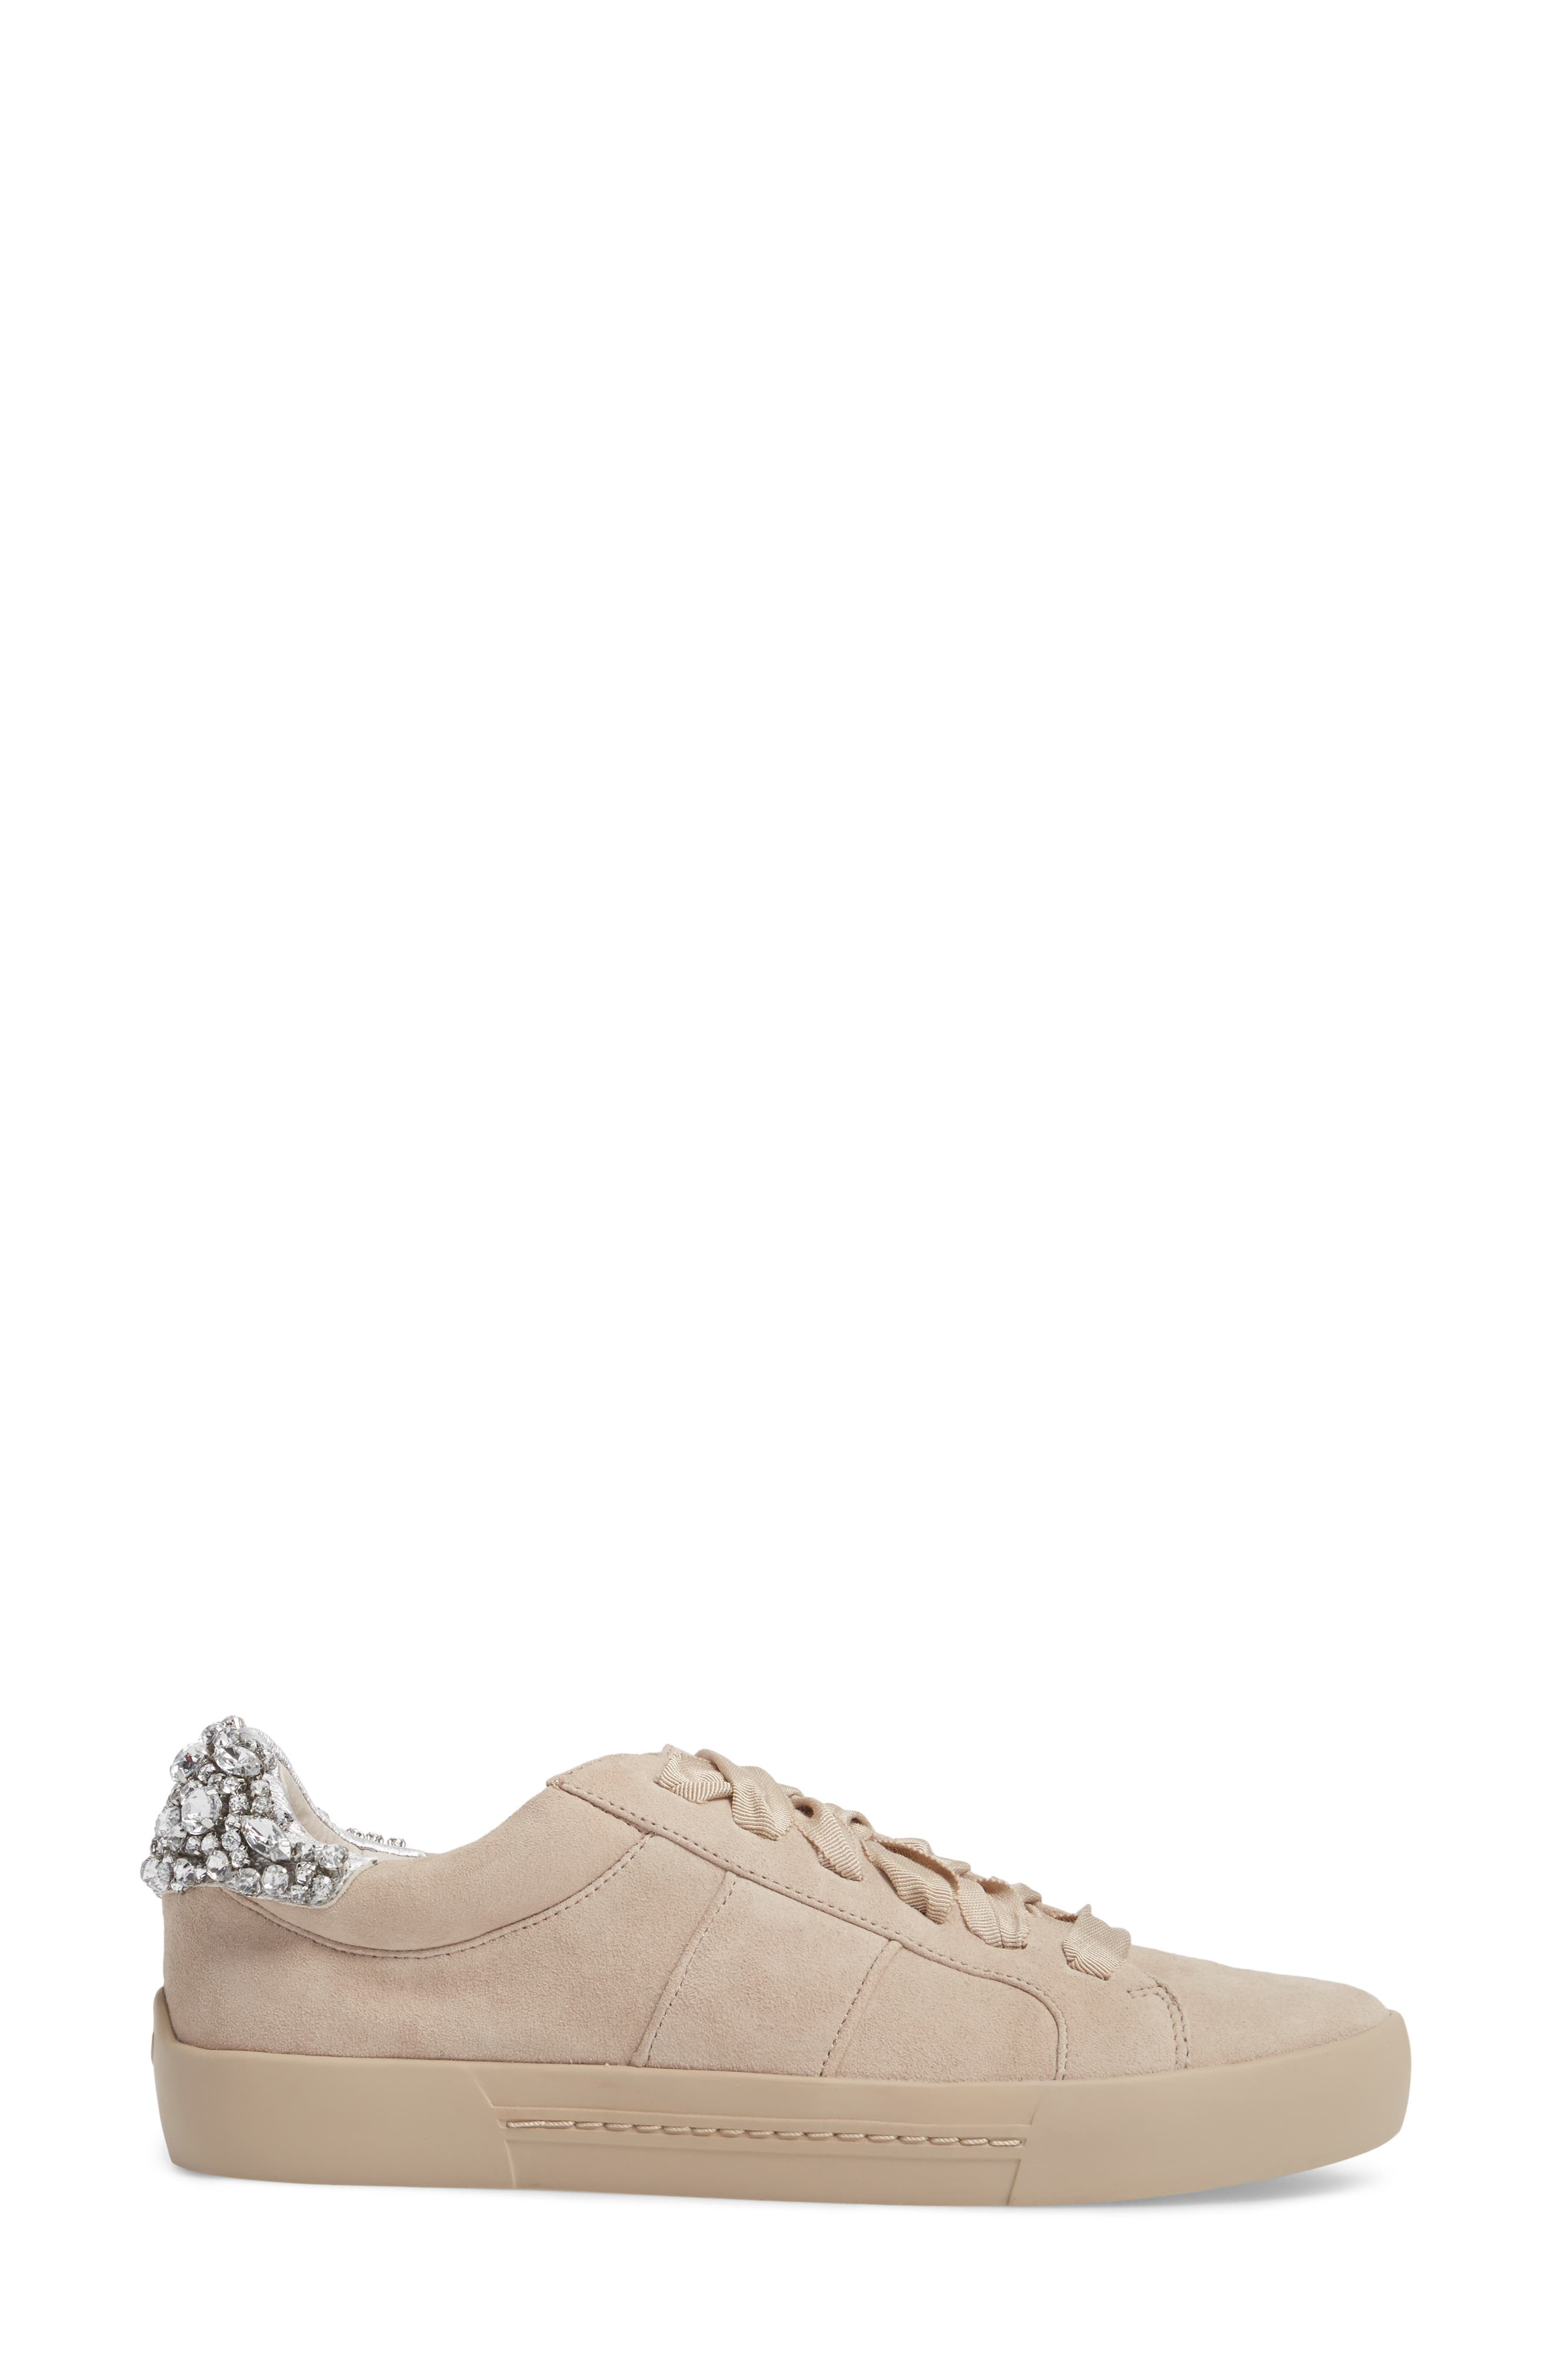 Darena Crystal Embellished Sneaker,                             Alternate thumbnail 3, color,                             055